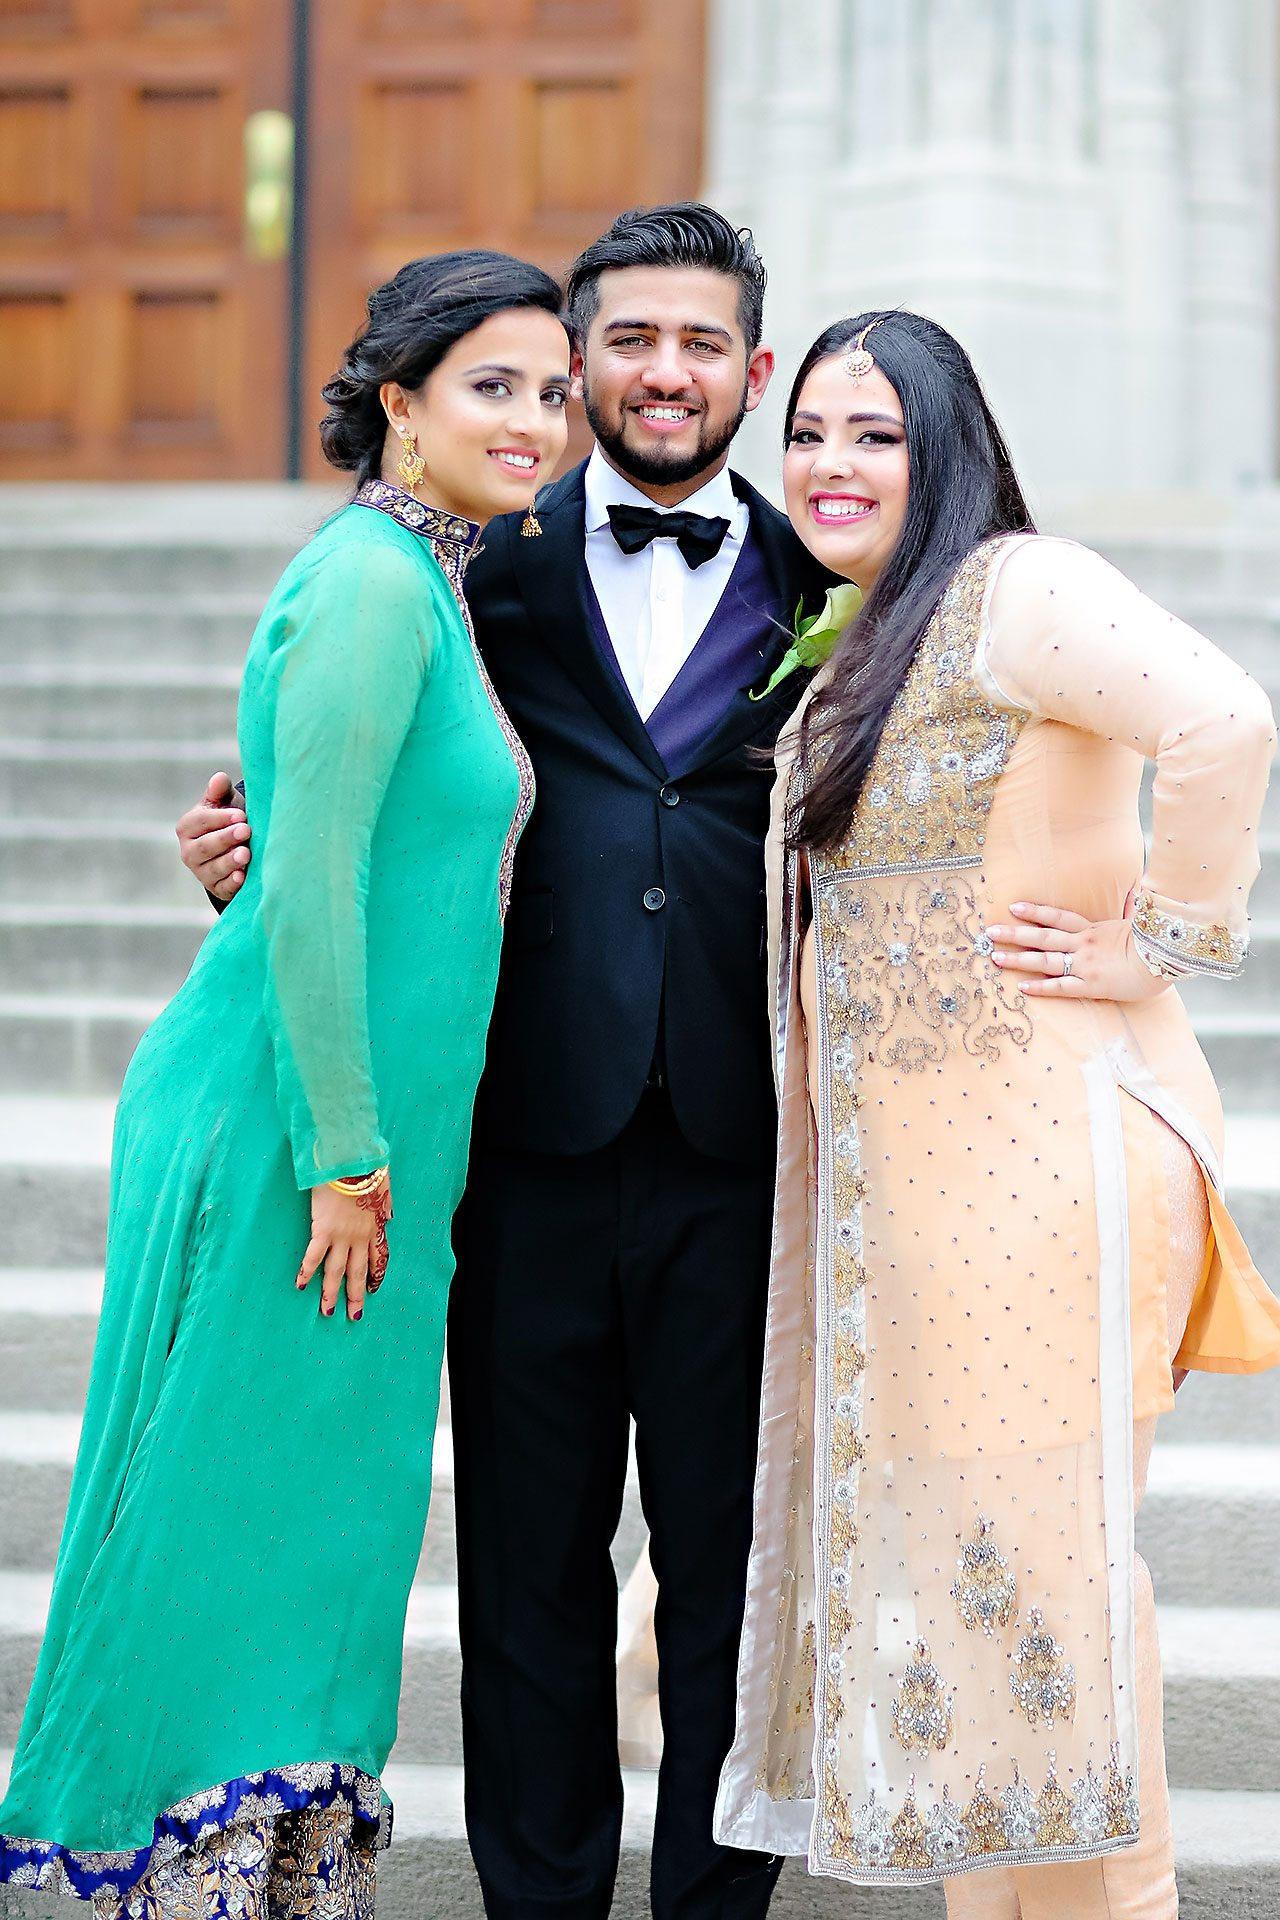 Haseeba Ammar Indianapolis Pakistani Wedding Reception 195